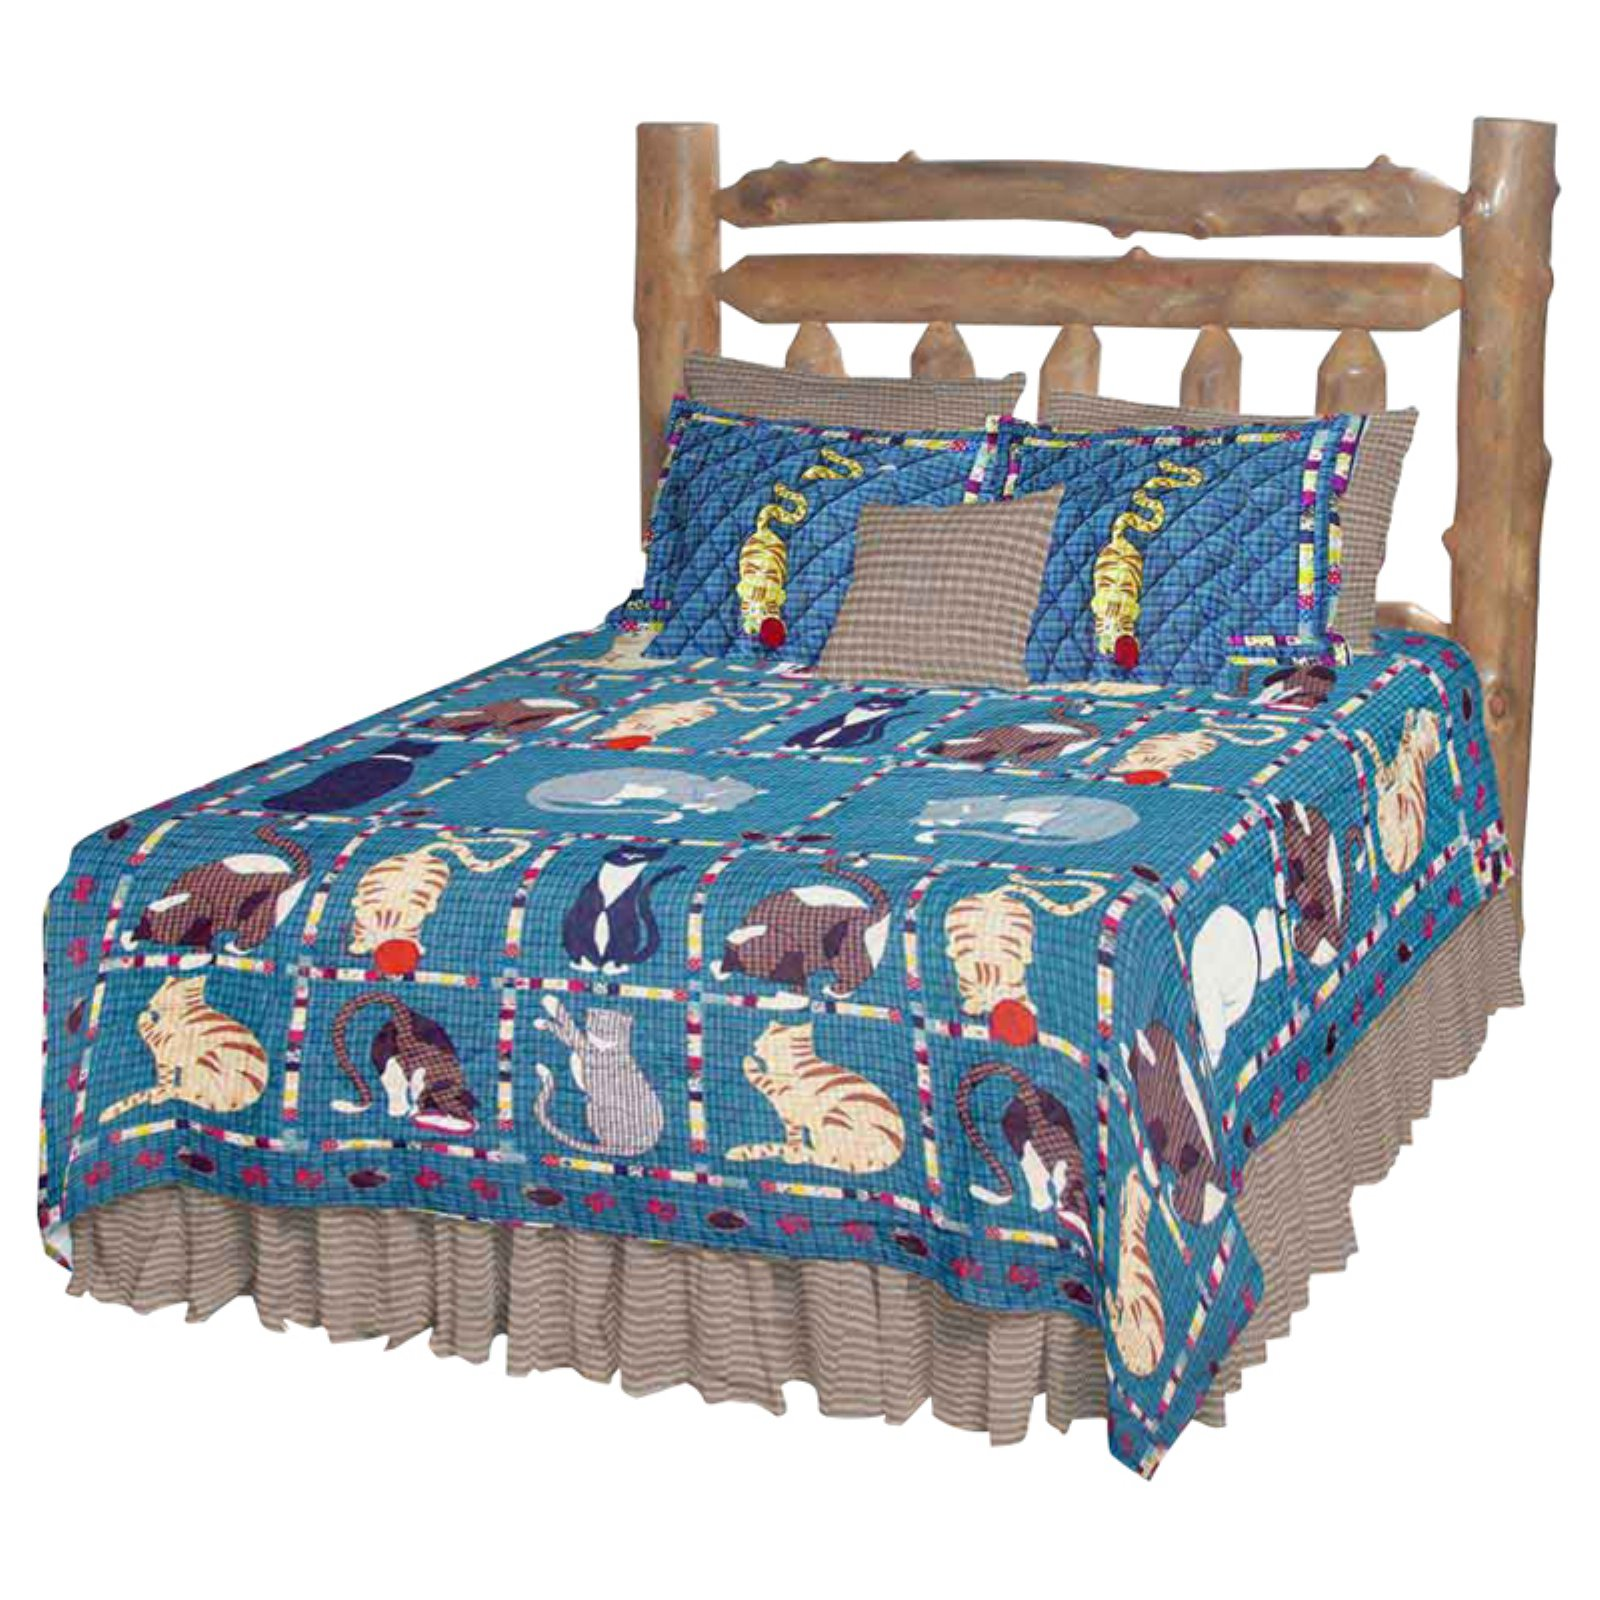 Patch Magic QTKTCT Kitty Cats, Quilt Twin 65 x 85 inch